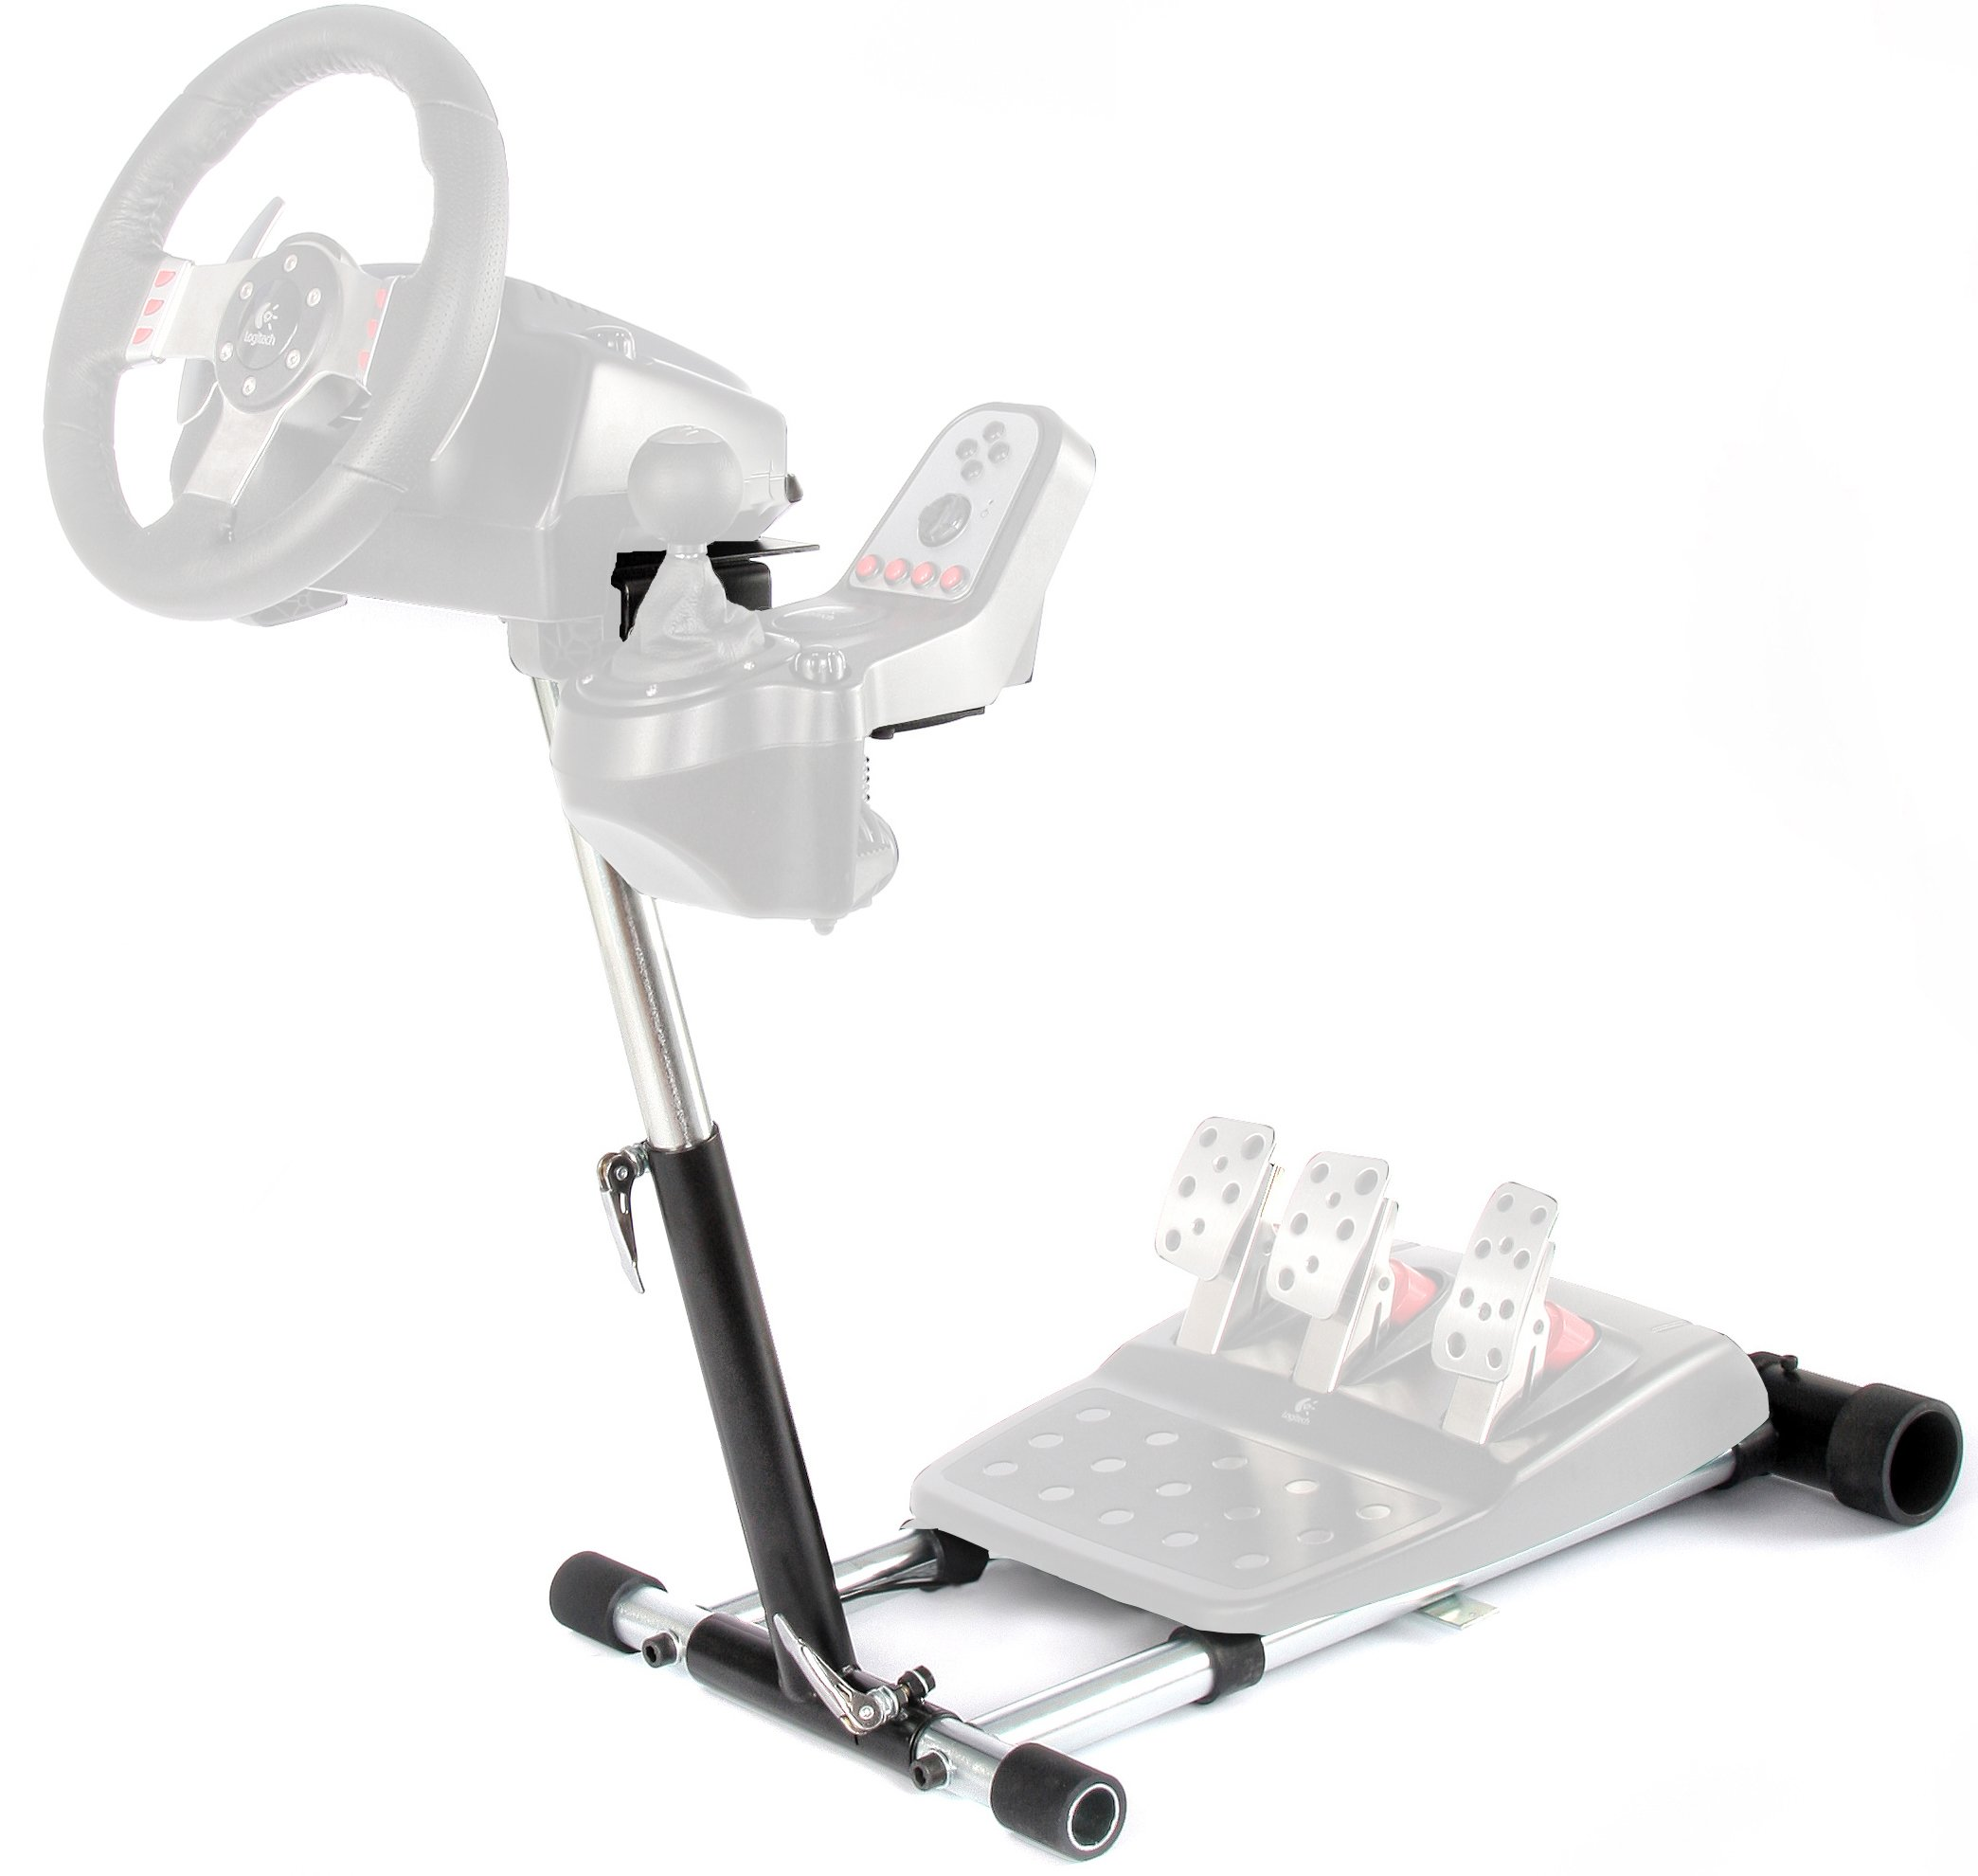 Wheel Stand Pro G Racing Steering Wheel Stand Compatible with Logitech G27/G25, G29 and G920 Wheels, Deluxe, Original V2. Wheel and Pedals Not Included.